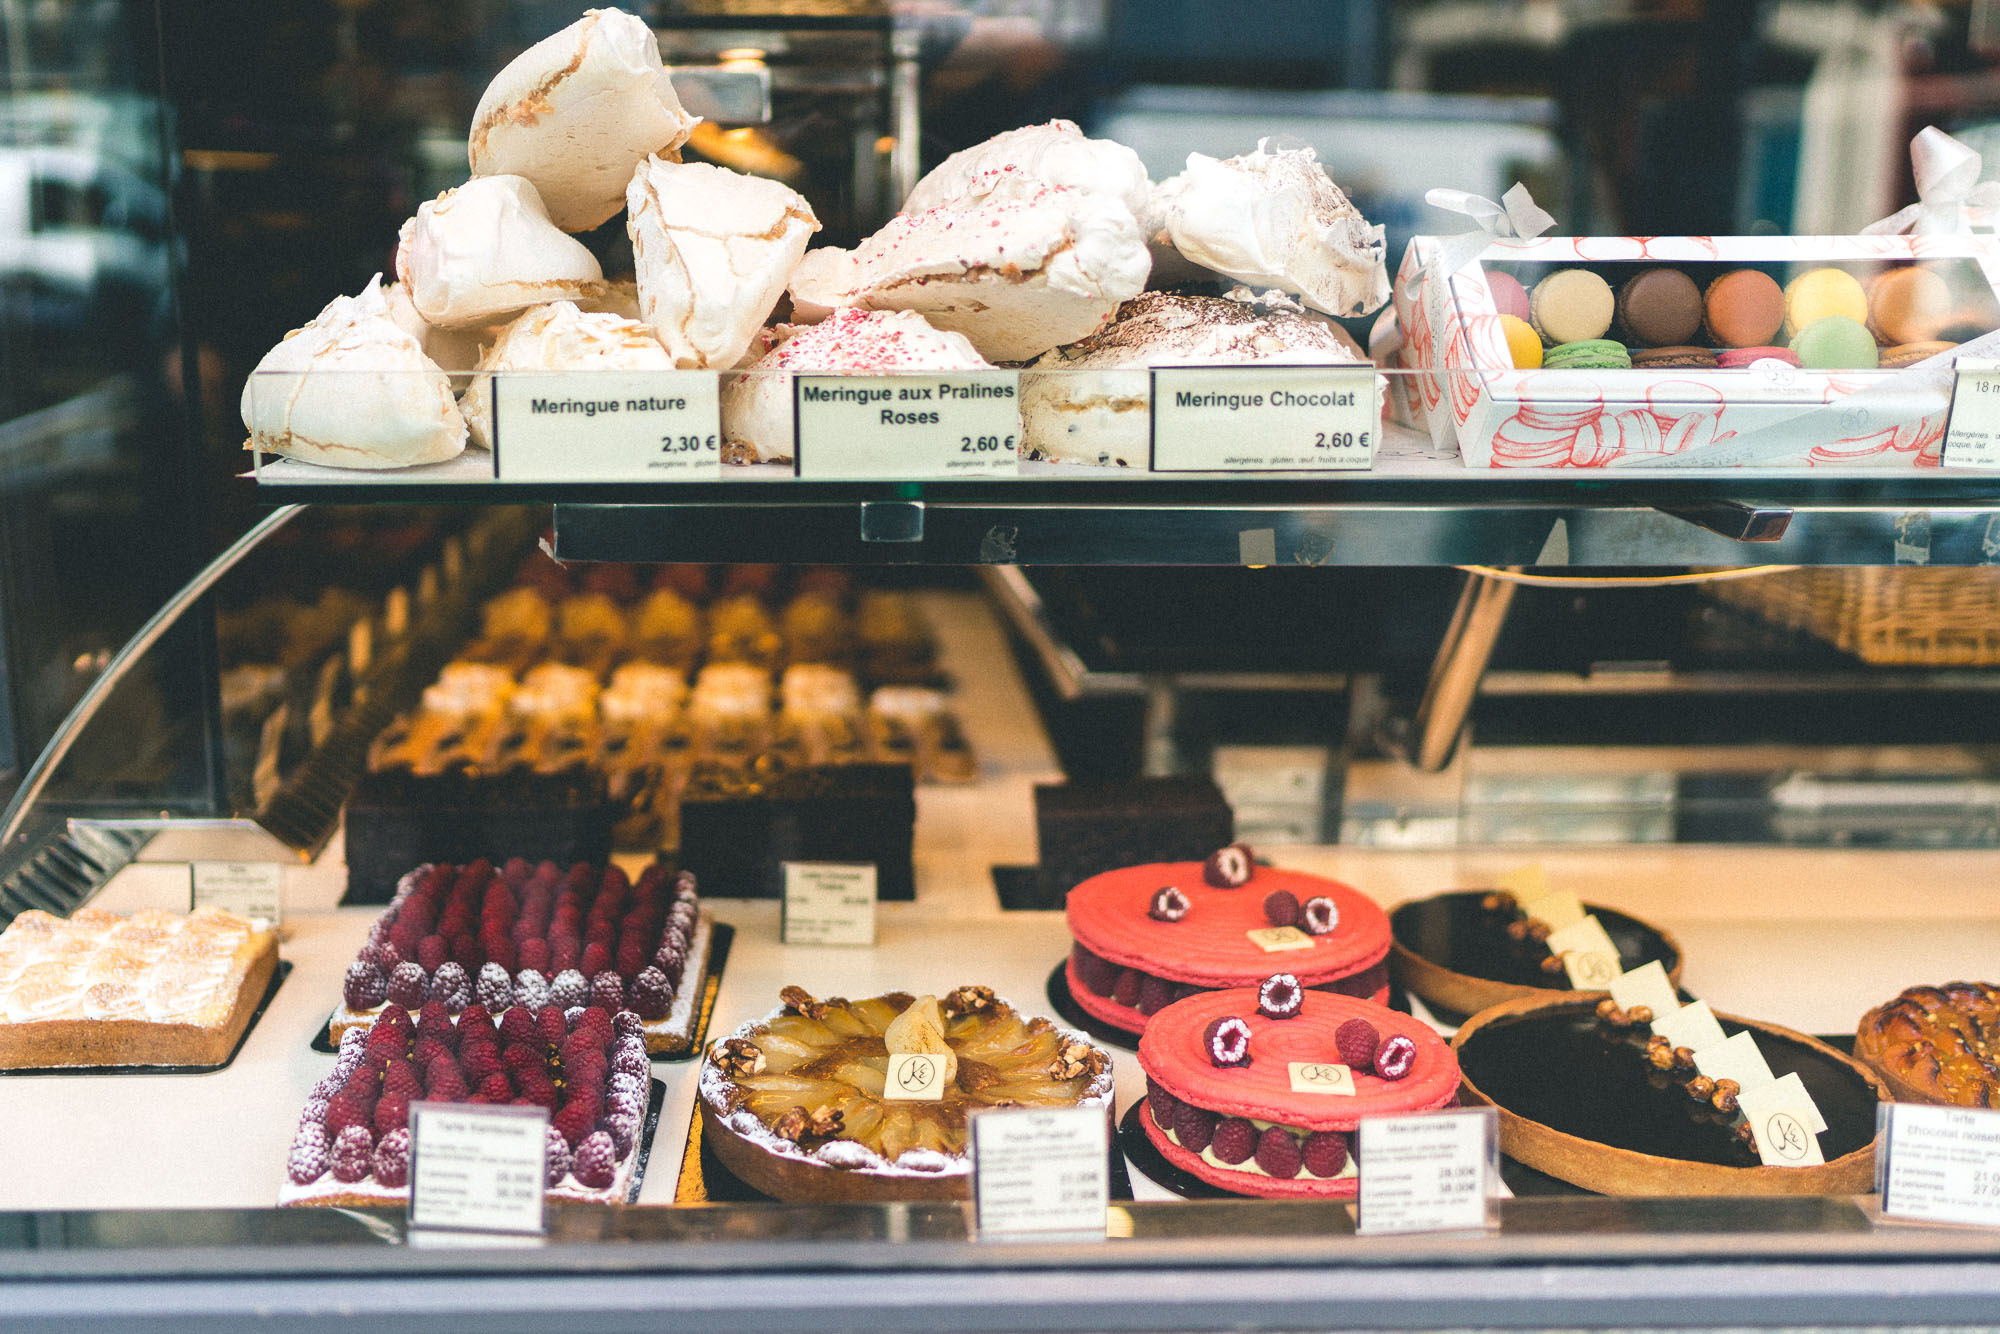 The best pastries and bakeries in Paris - Complete Paris Travel Guide